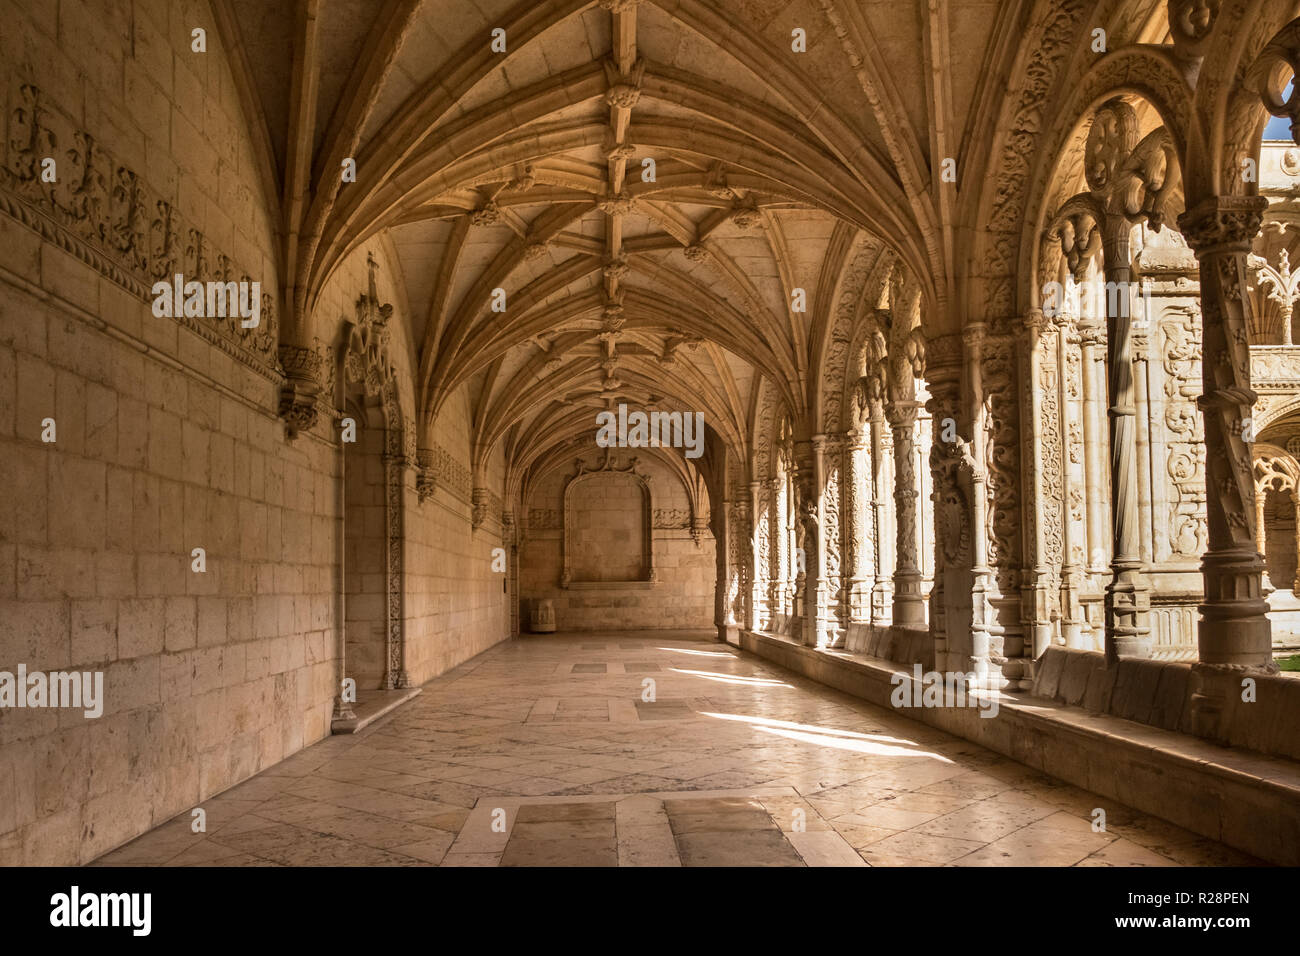 Portuguese UNESCO world heritage site, Monastery of the Hieronymites also known as the Jeronimos Monastery - Stock Image